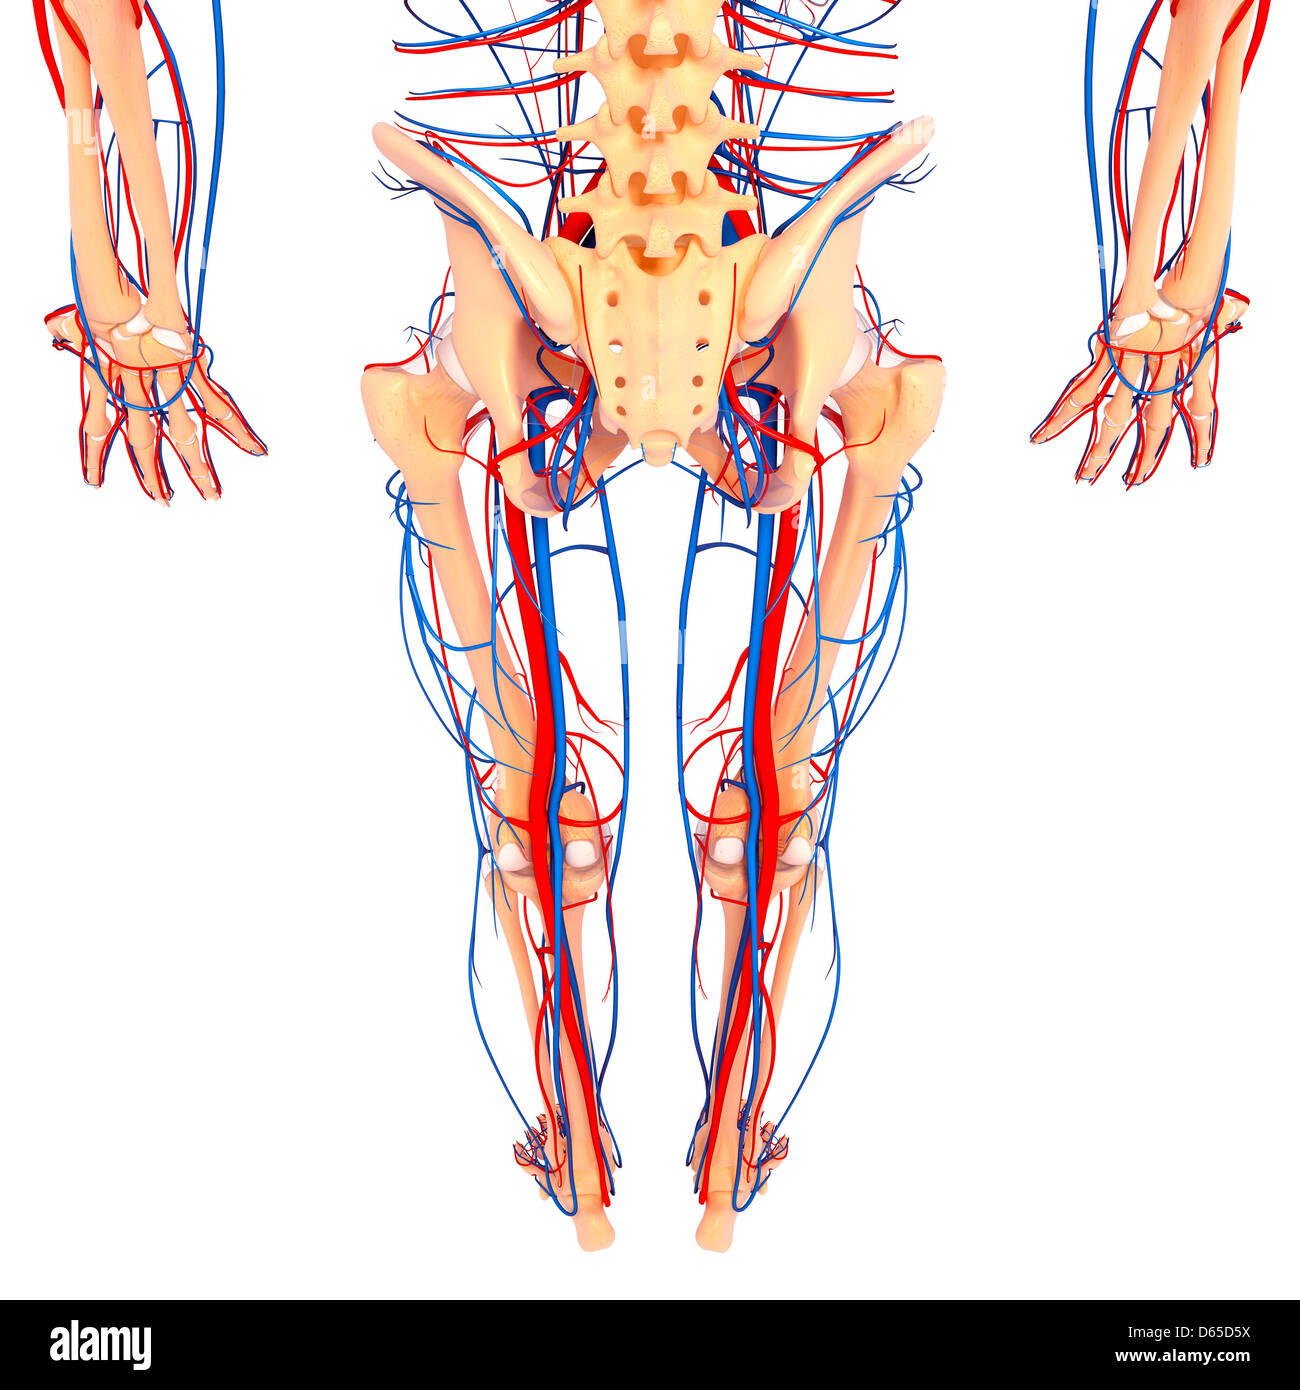 Lower Body Anatomy Artwork Stock Photo 55439158 Alamy